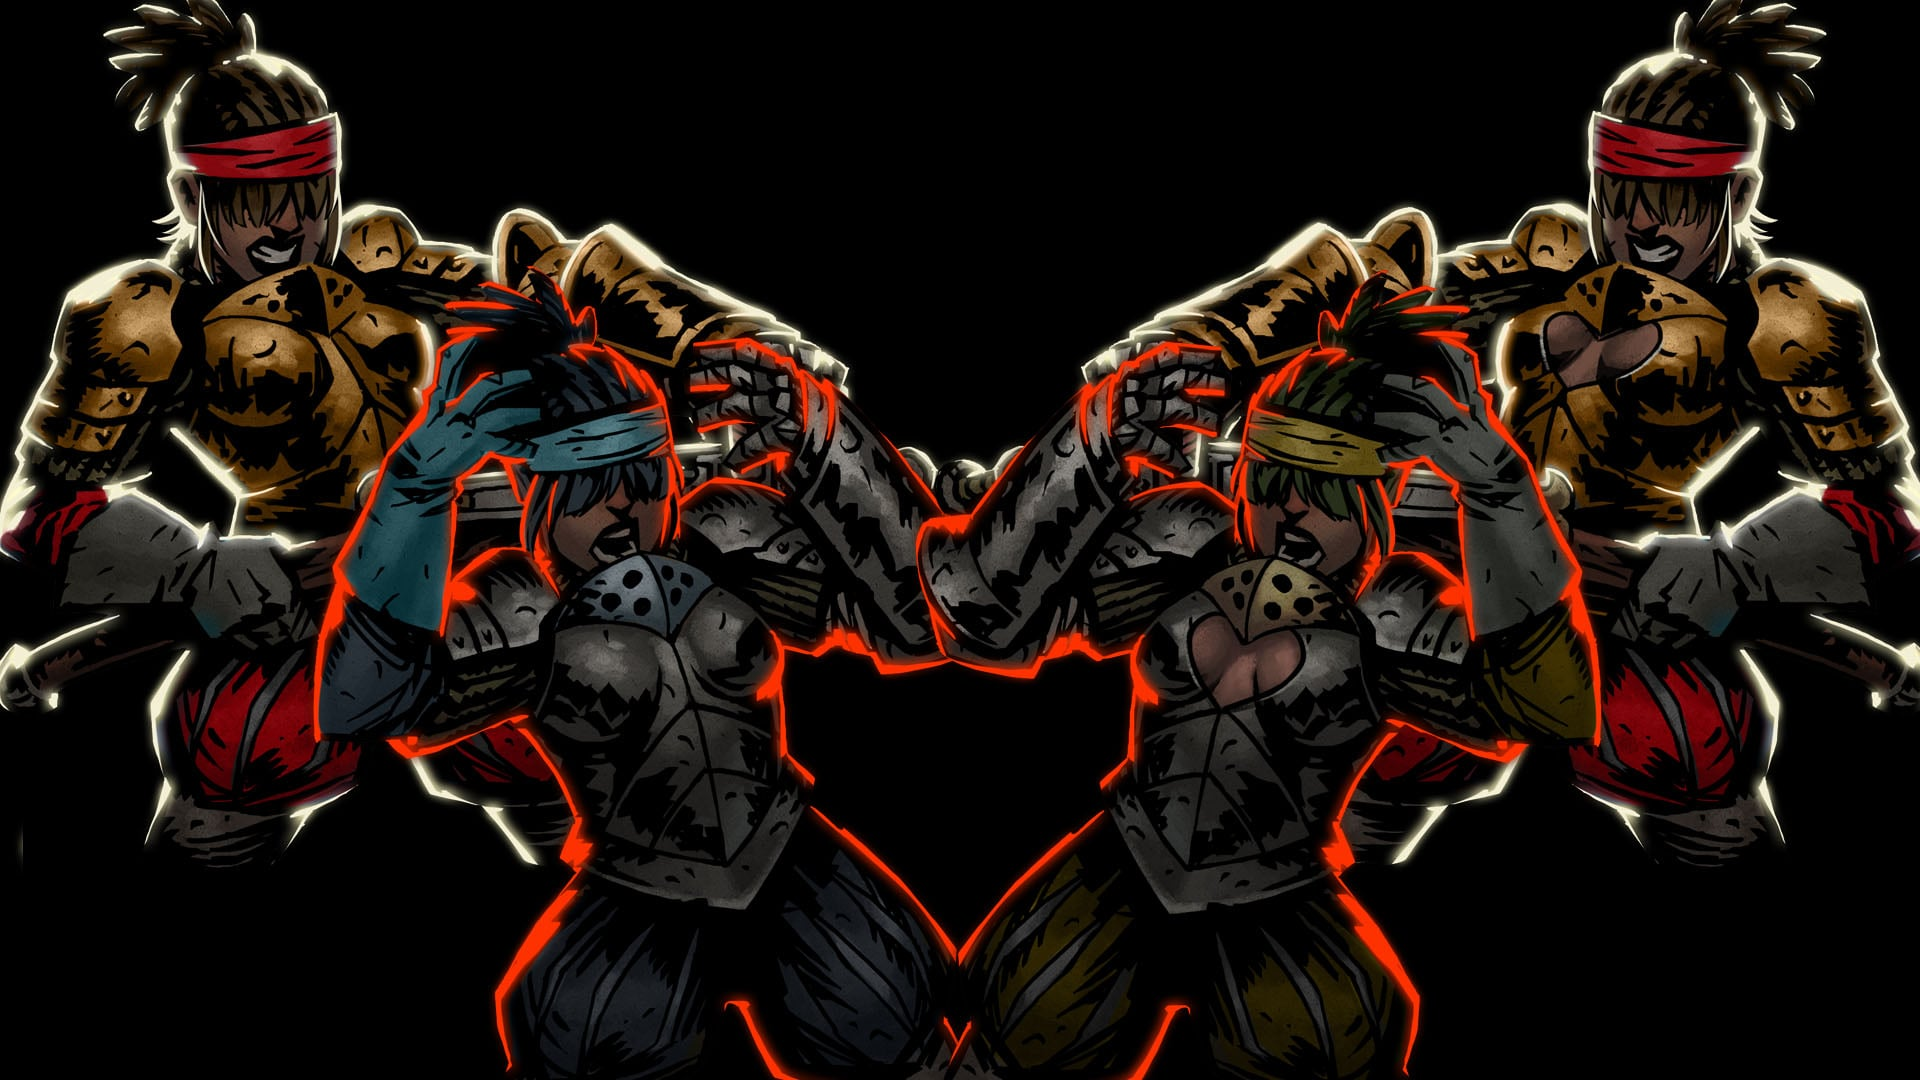 Darkest Dungeon: Arbalest widescreen wallpapers